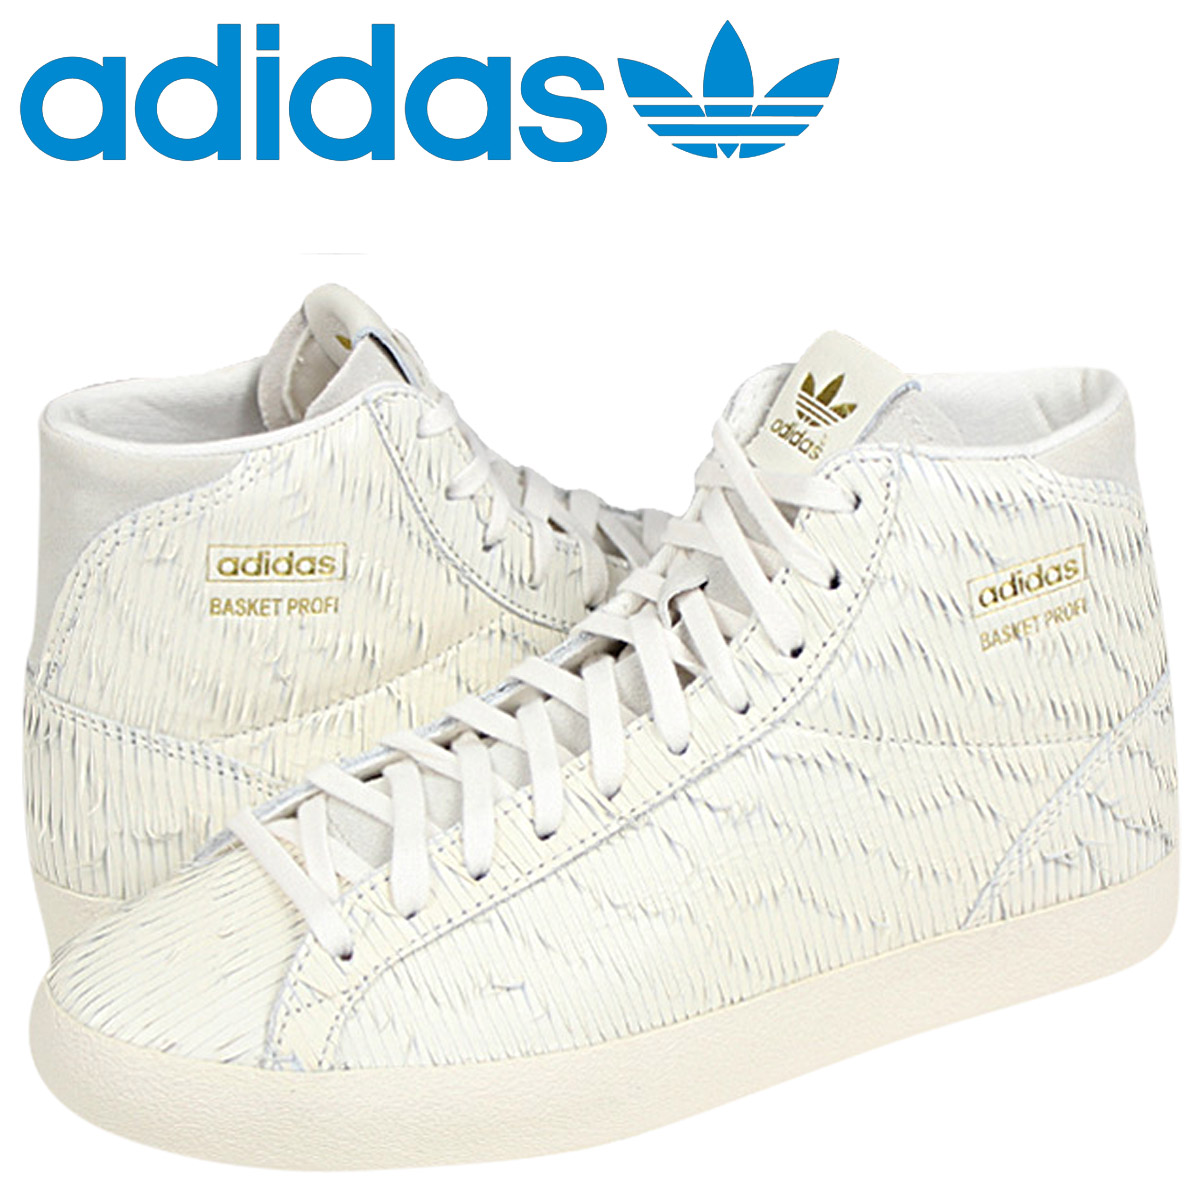 new arrival b8d32 fc5b0 adidas originals and ☆ TOP TEN HI ☆